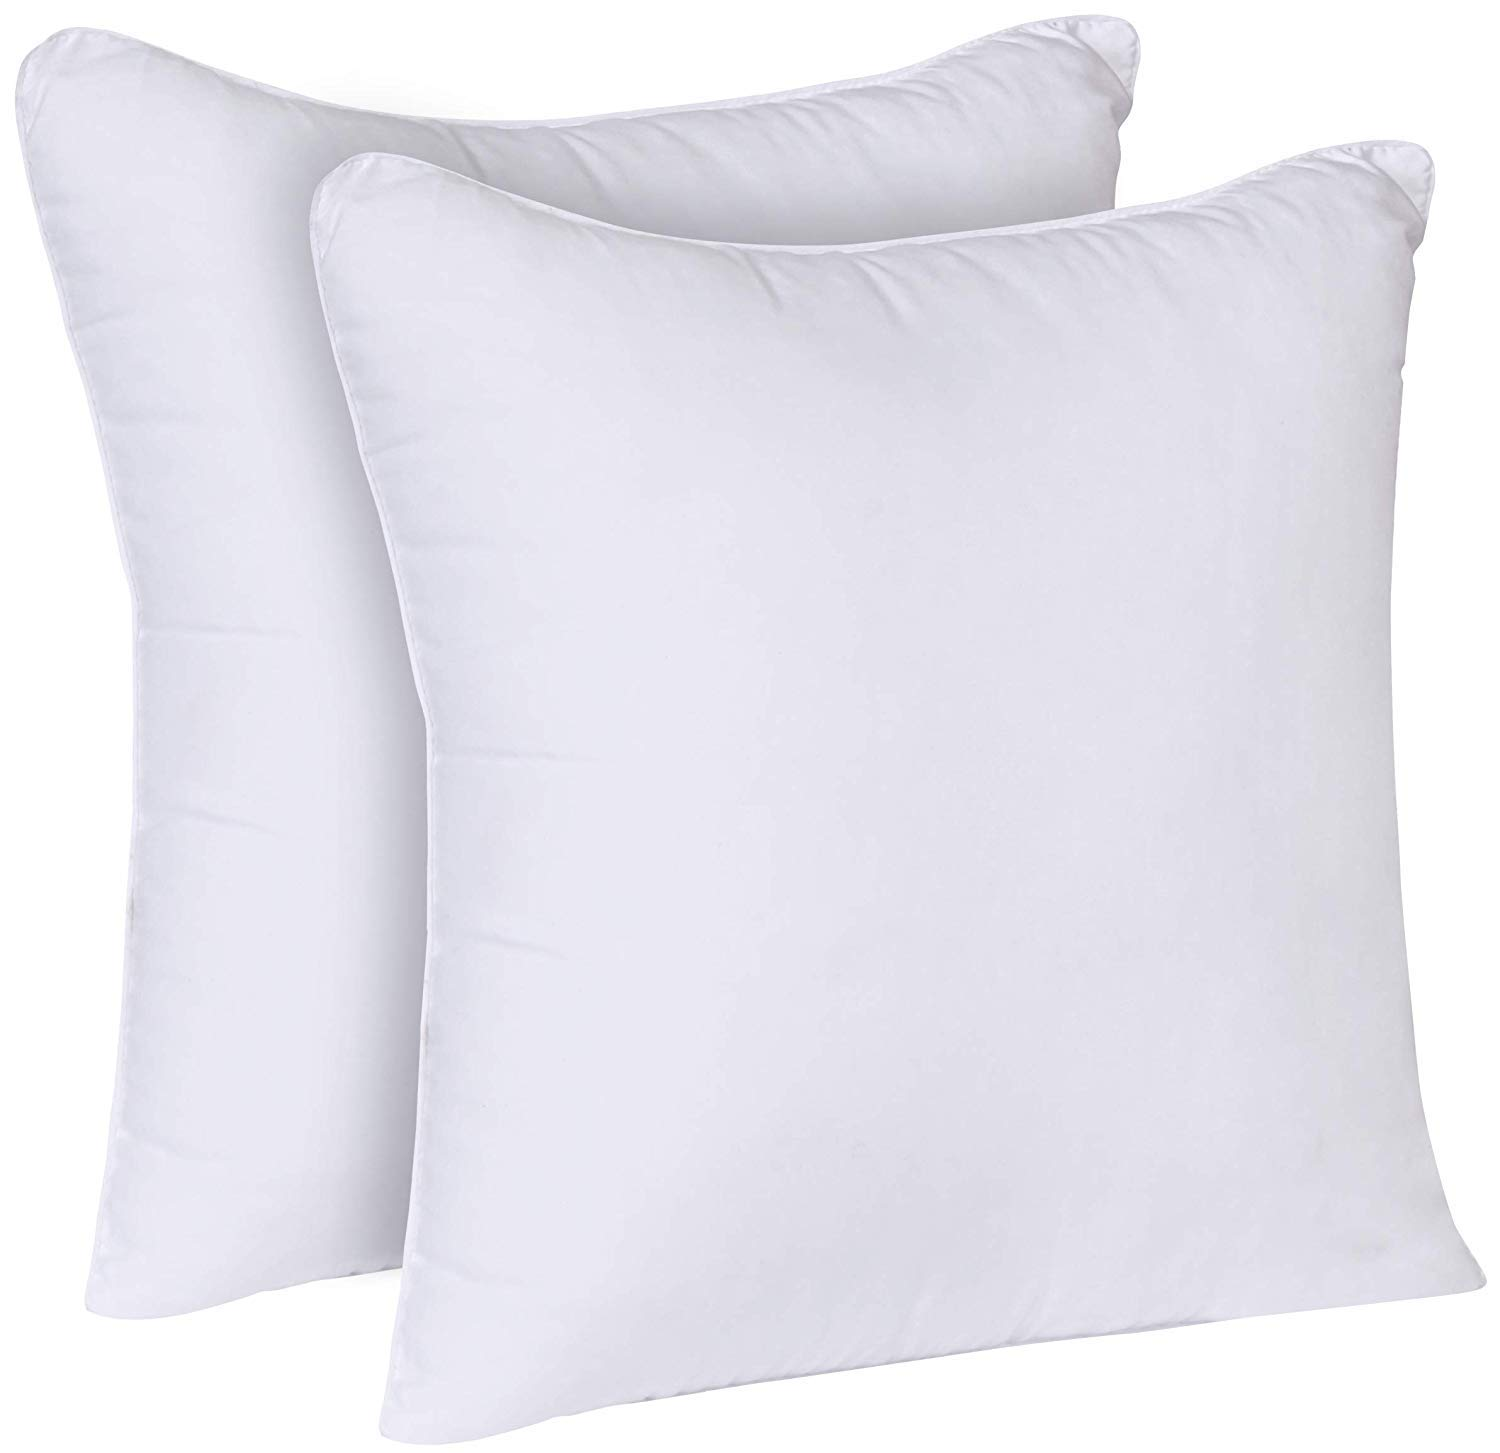 Groovy Amazon Com Utopia Bedding Decorative Pillow Inserts Pack Cjindustries Chair Design For Home Cjindustriesco